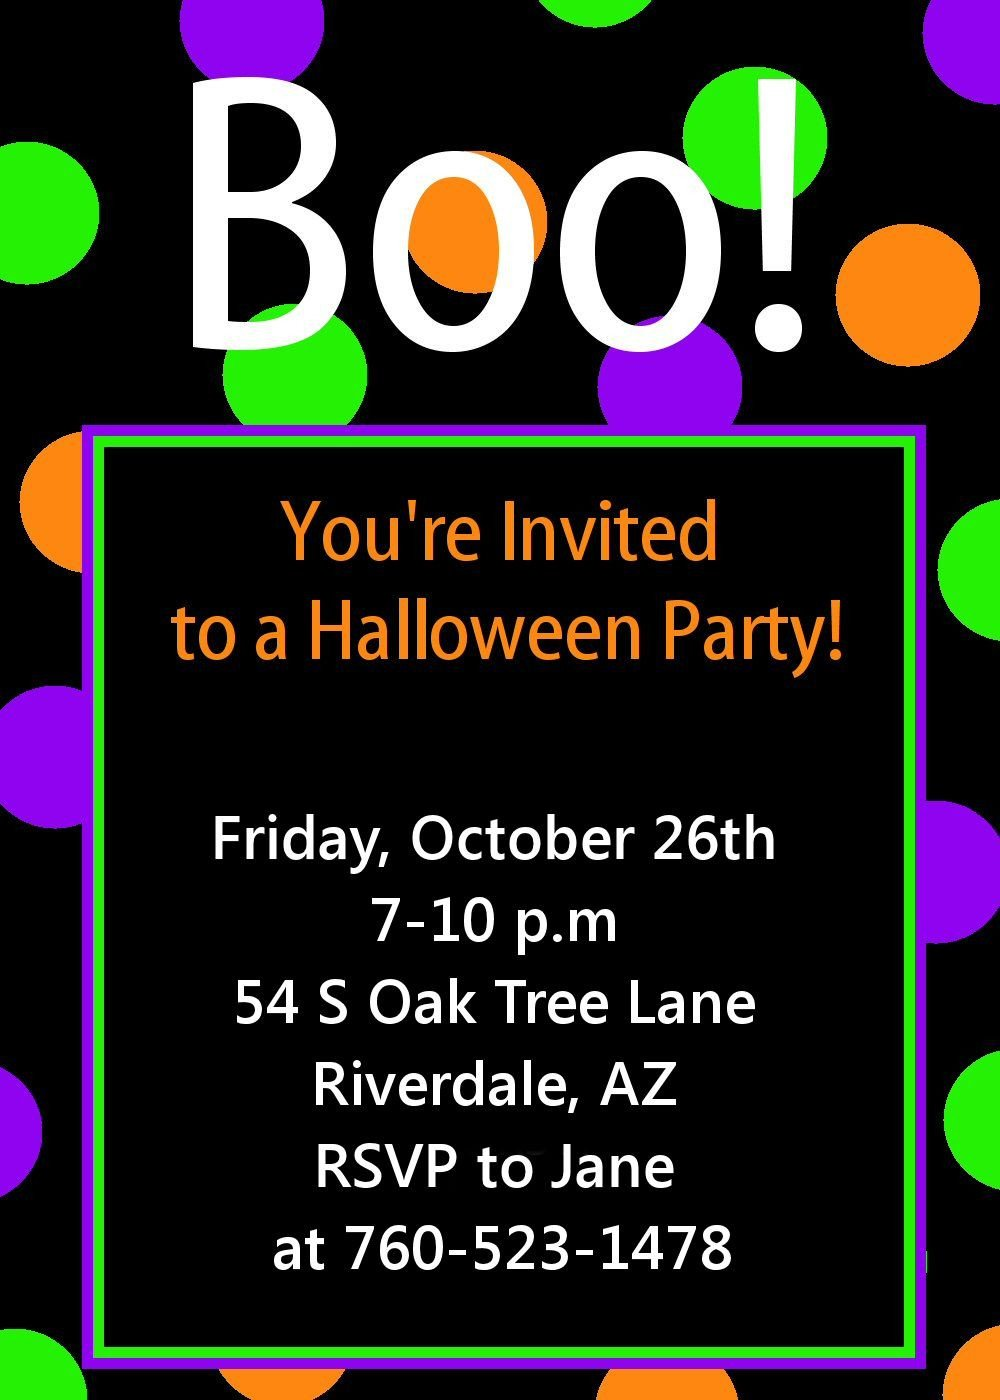 Free Halloween Party Invitation Templates Free Printable Halloween Party Invitations Templates